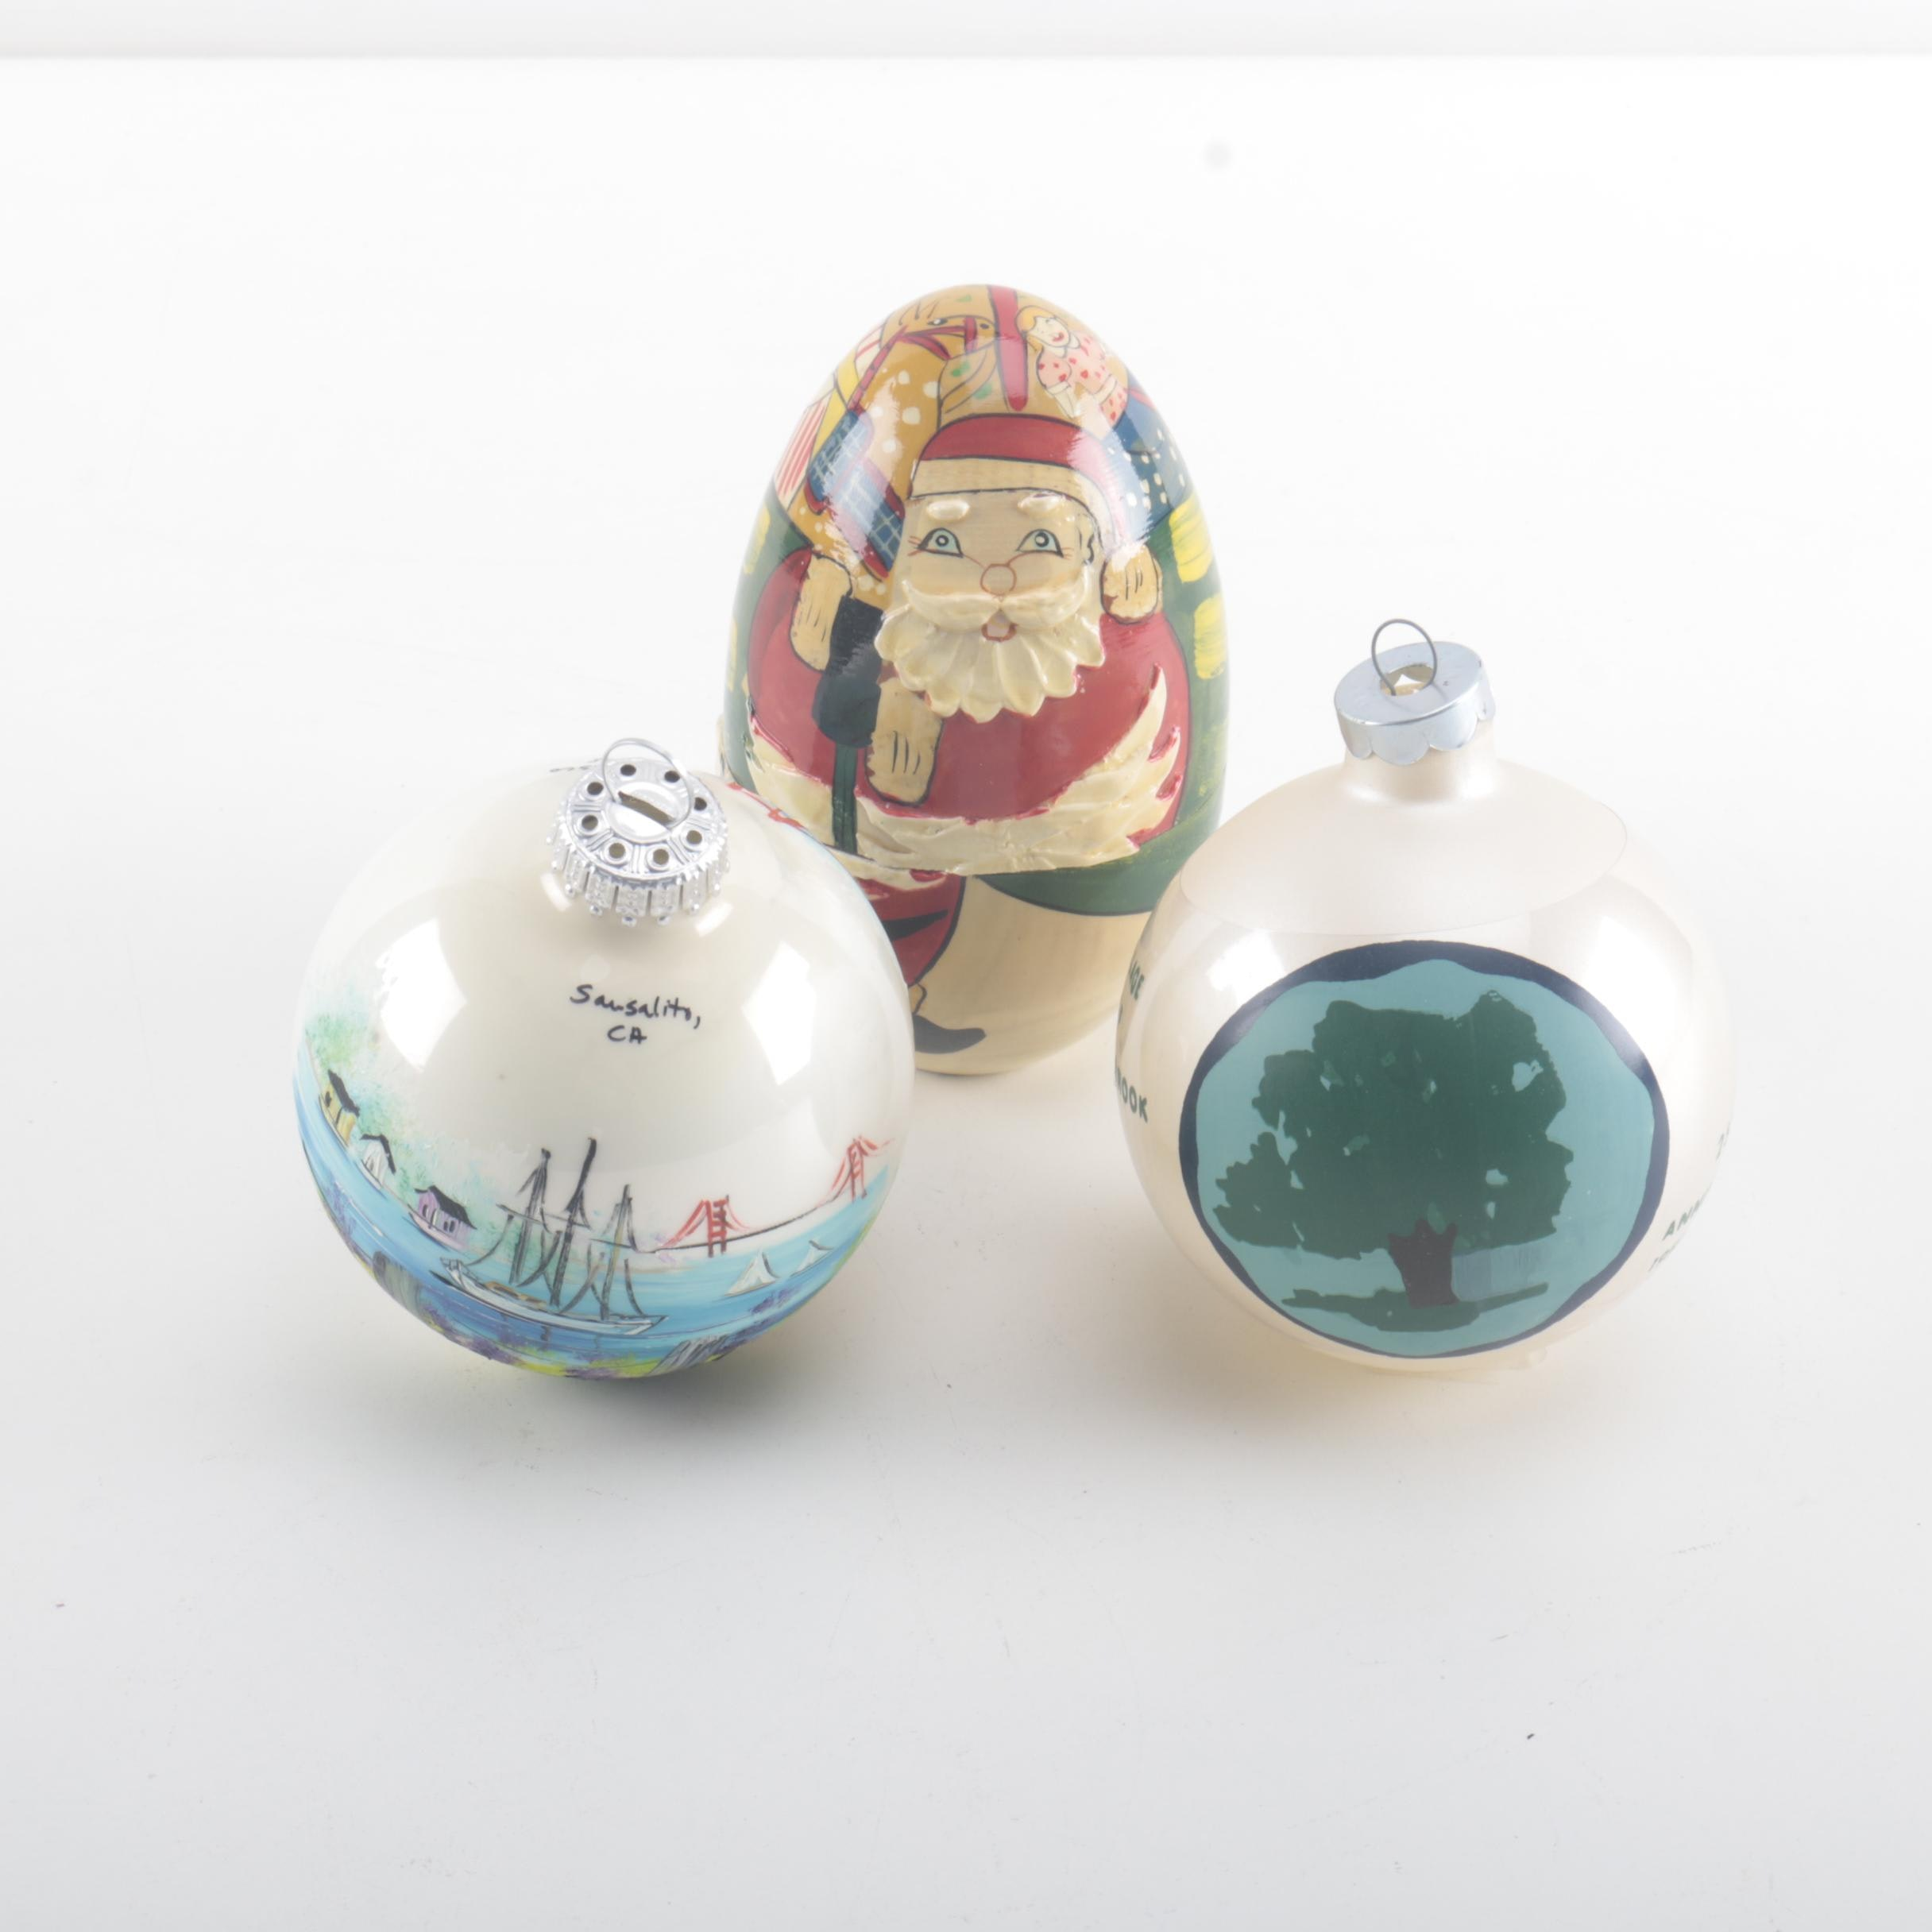 Souvenir Christmas Ornaments With Santa Matryoshka Doll